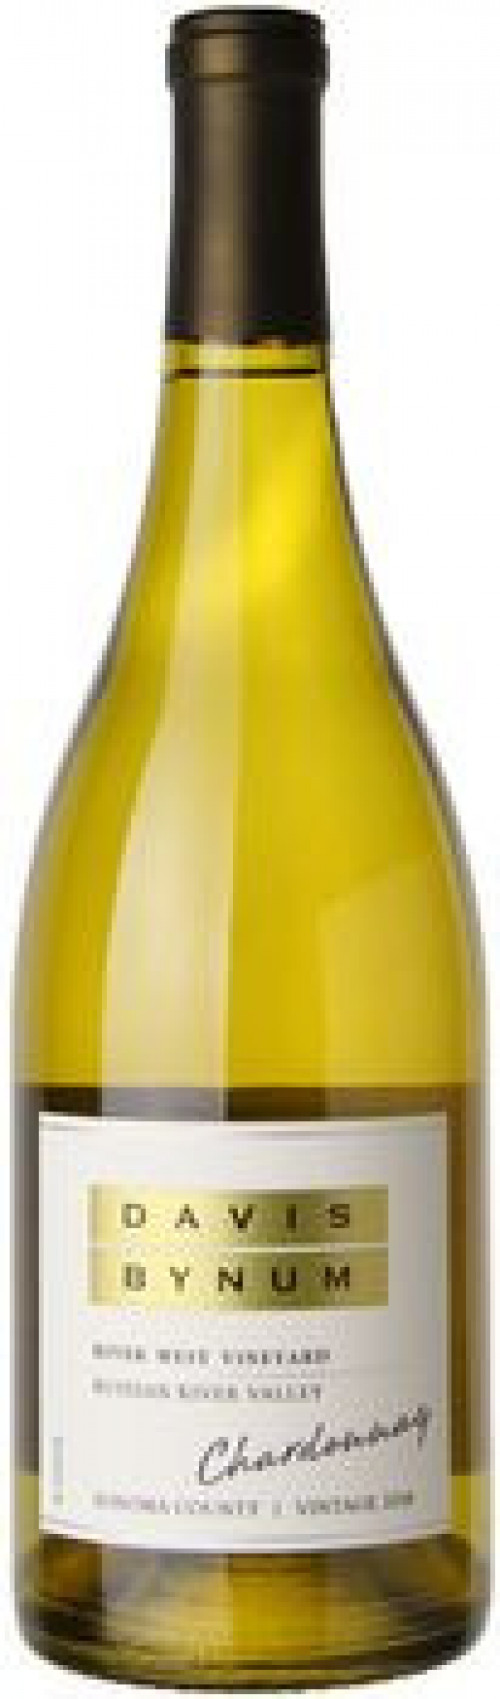 Davis Bynum Chardonnay River West Vineyard Russian River 750ml